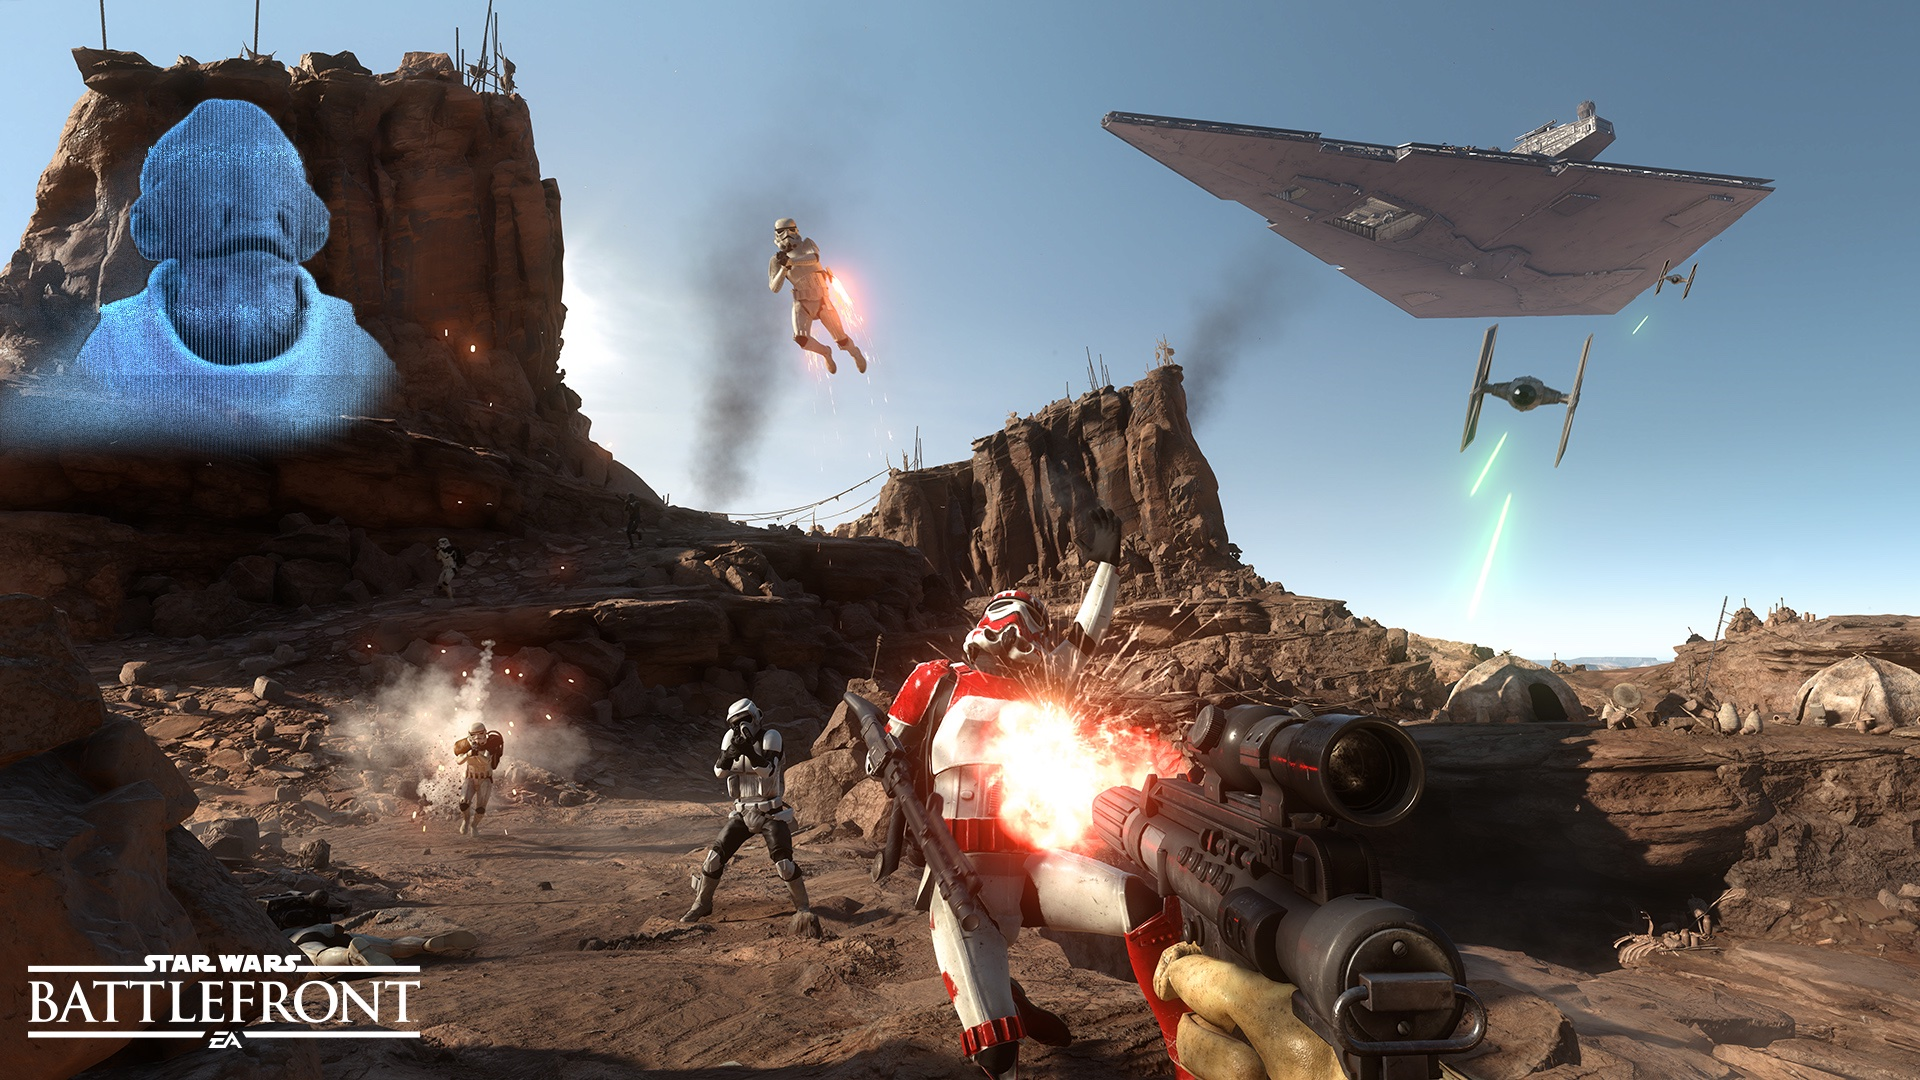 DICE Explains Why Battlefront Doesn't Have a Campaign